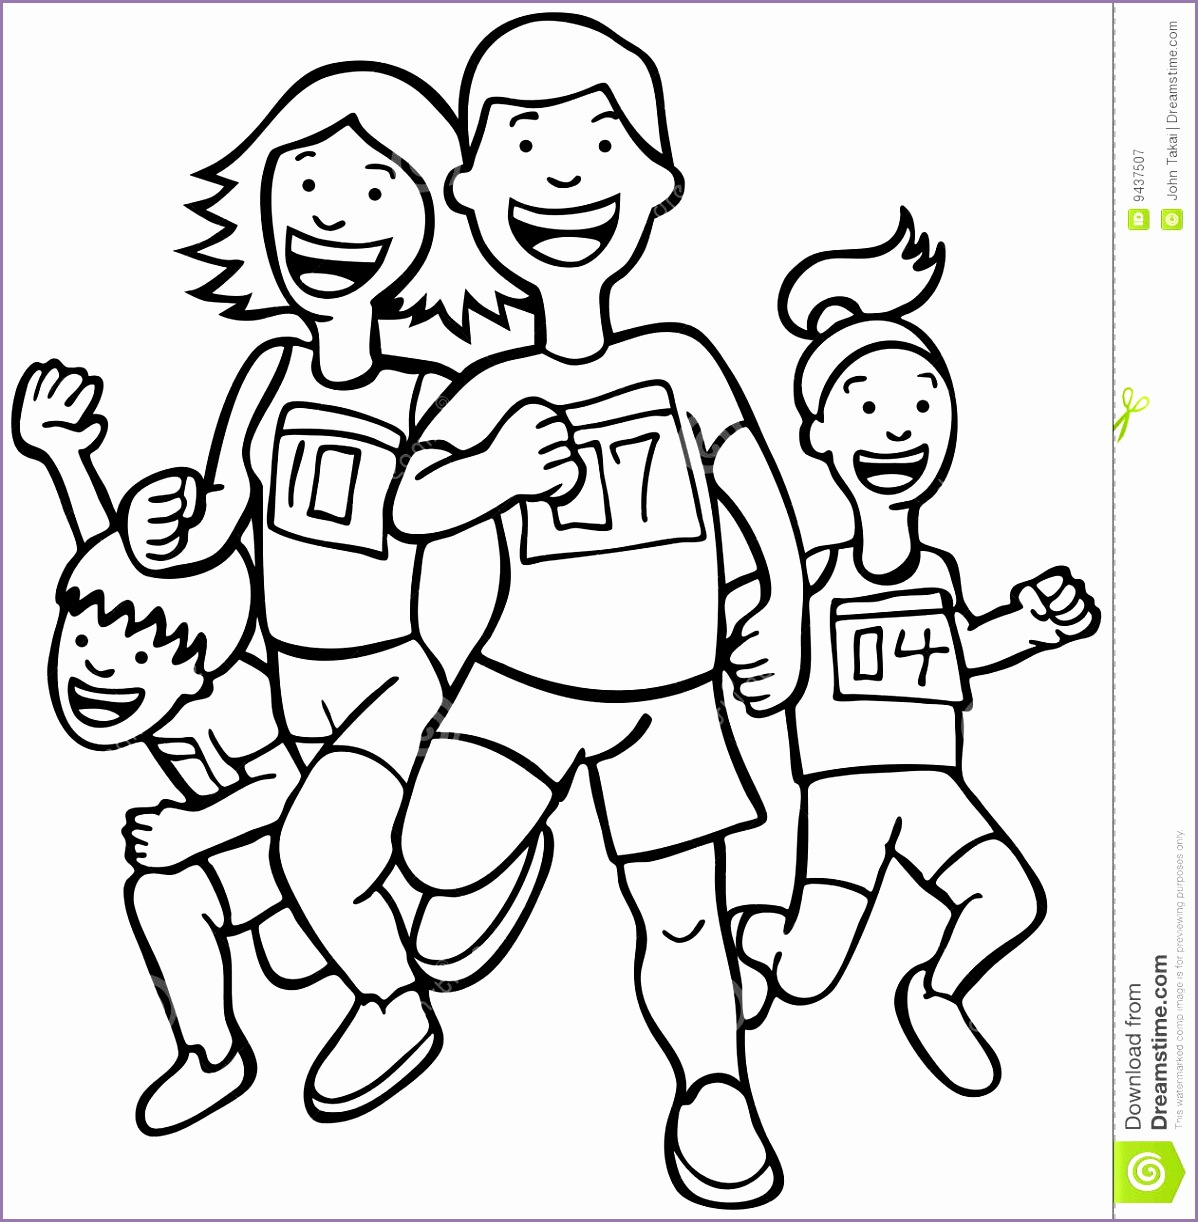 aa2c9ff40fc bc721fa9e44e kids running clipart black and white clipart panda free kids running clipart black and white 1262 1300